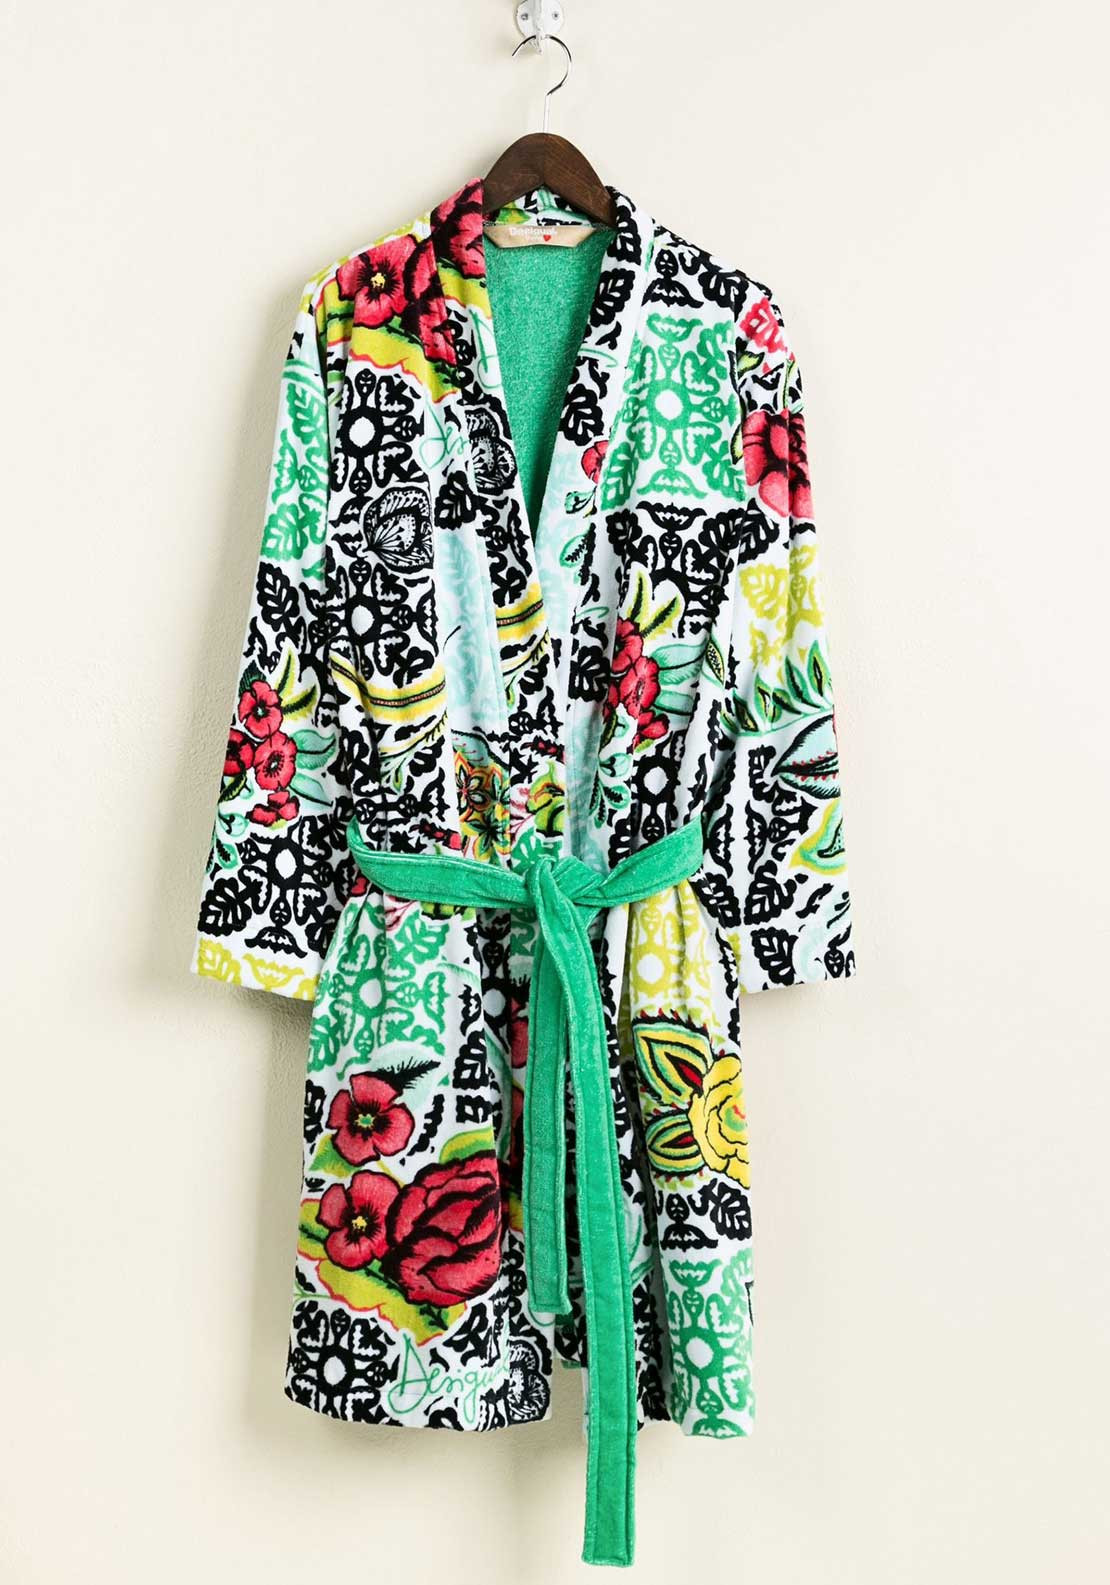 Fine Desigual Dressing Gown Gallery - Images for wedding gown ideas ...